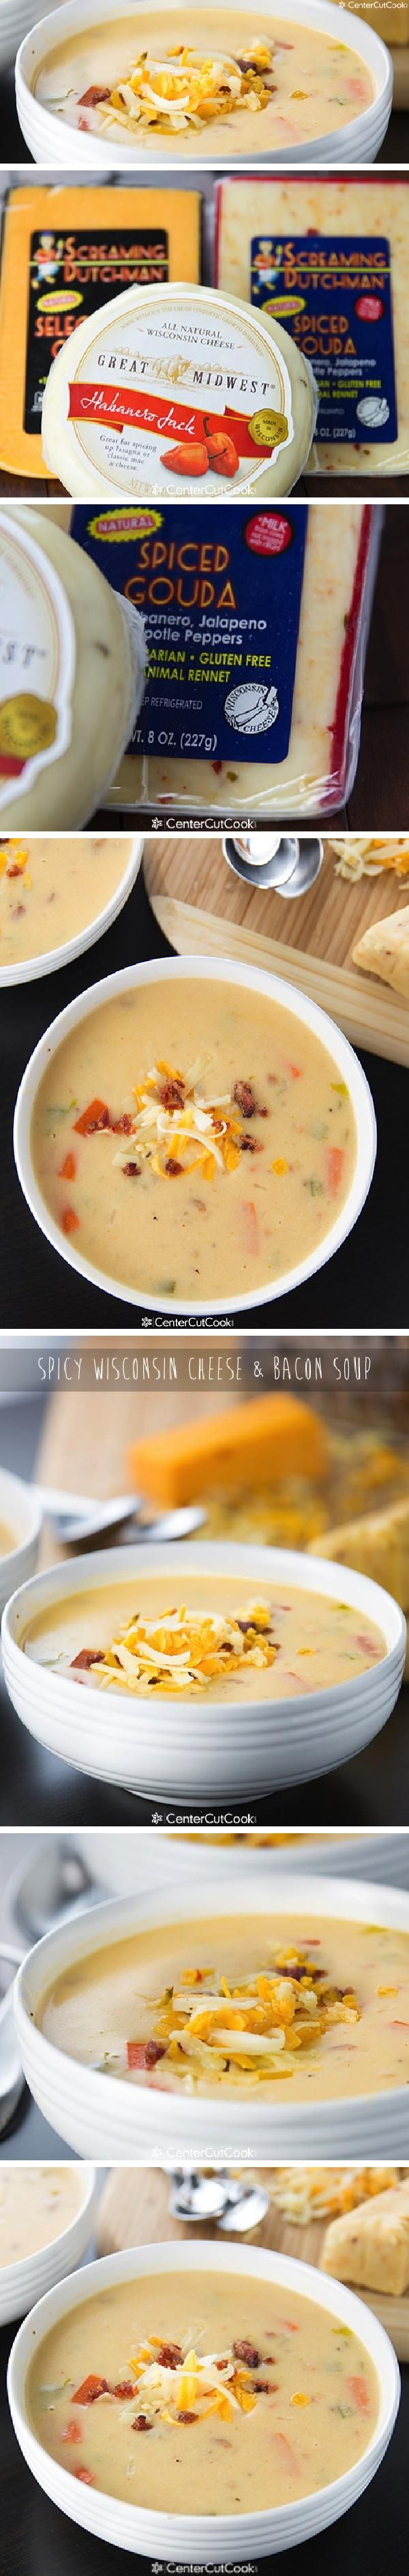 Creamy SPICY WISCONSIN CHEESE & BACON SOUP with spiced gouda, habanero jack, and sharp cheddar cheese with crispy bacon! An easy recipe that comes together fast!